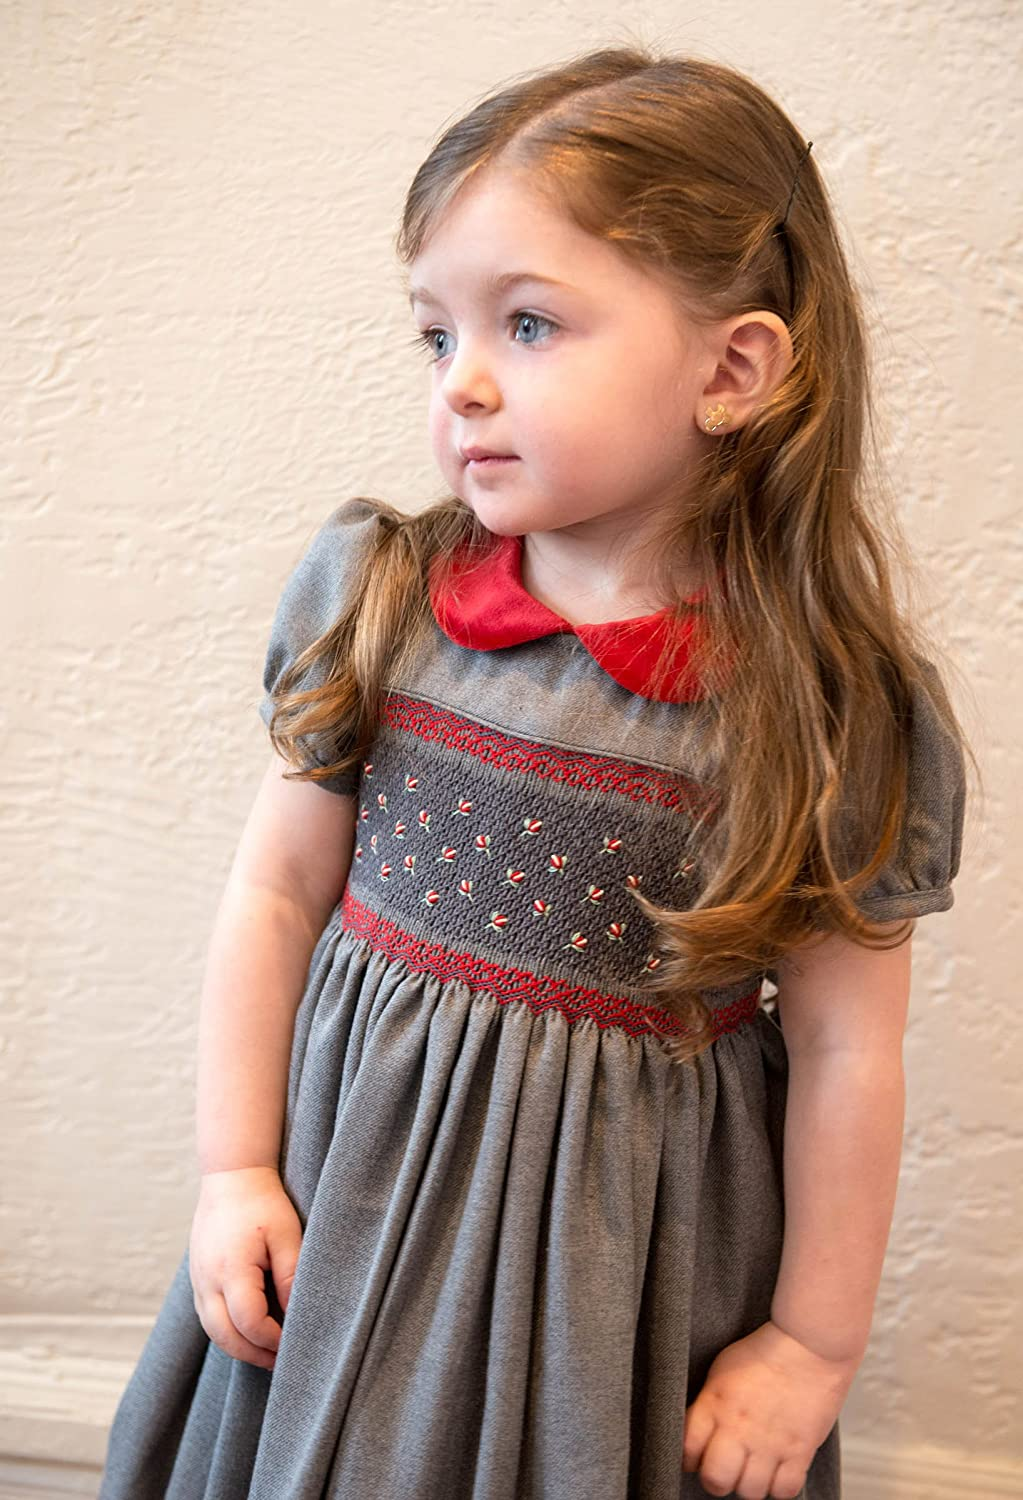 Kids 1950s Clothing & Costumes: Girls, Boys, Toddlers Carriage Boutique Girls Hand Smocked Holiday Party Dress - Dark Gray with Red Flowers $60.00 AT vintagedancer.com